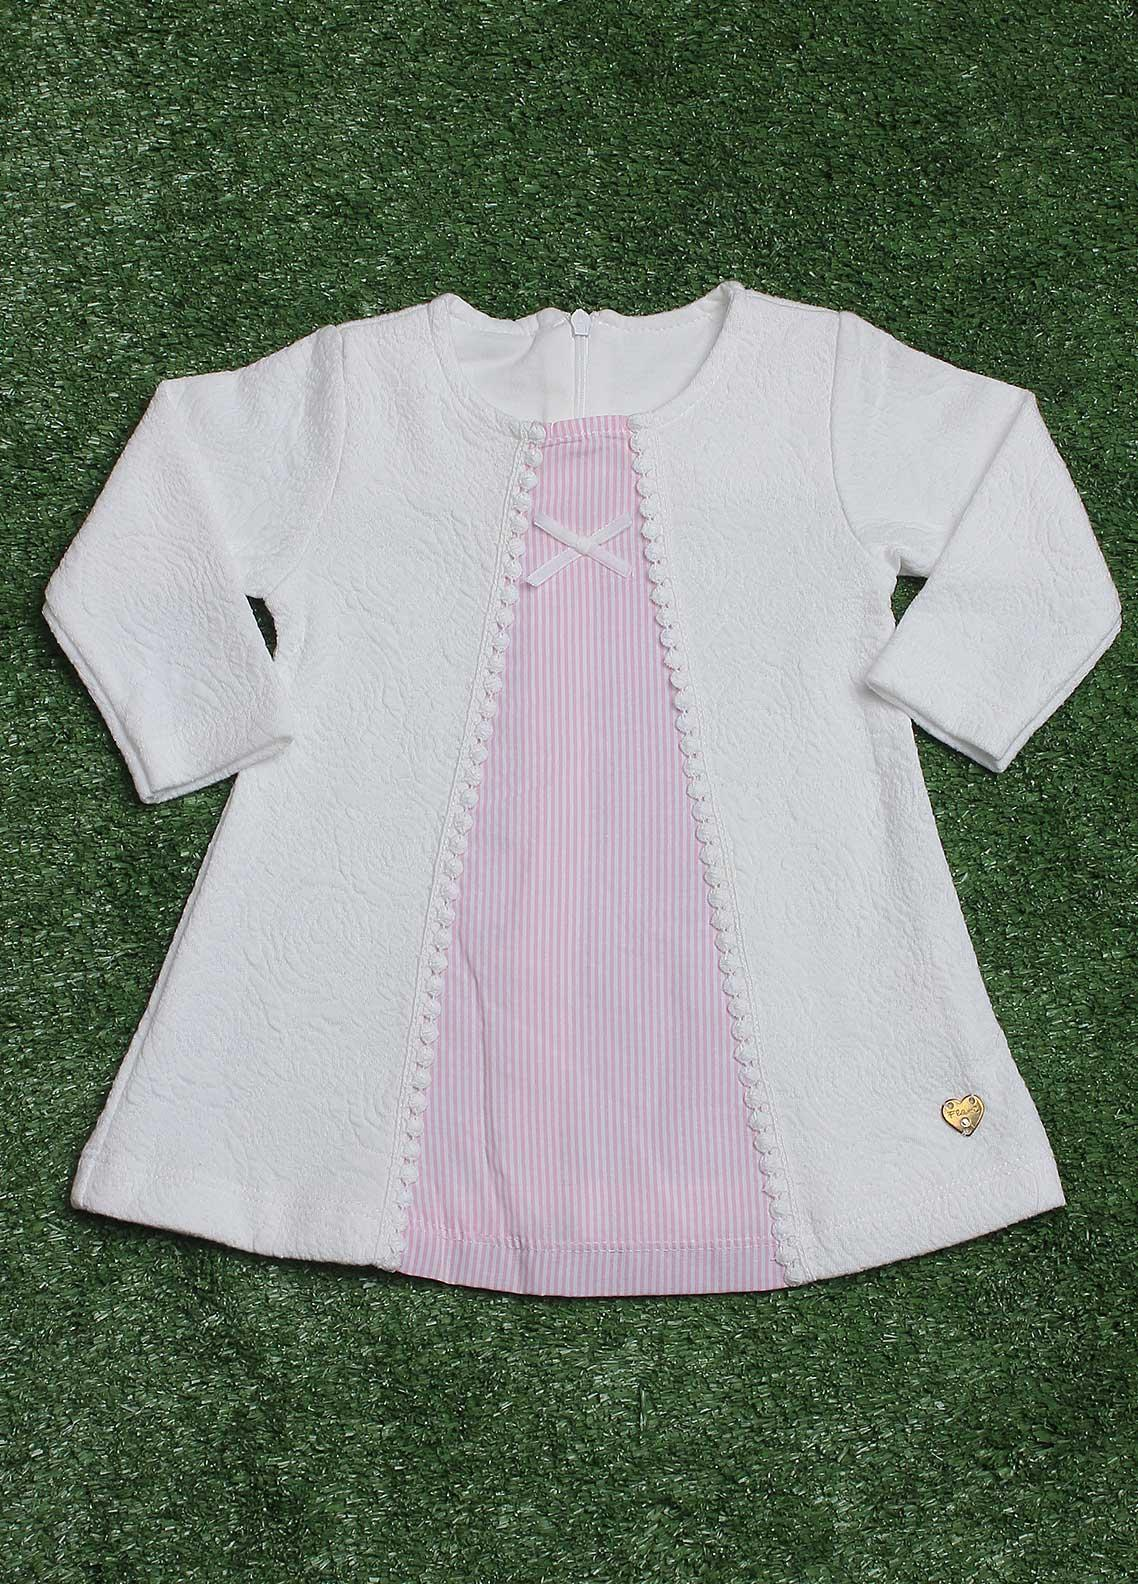 Sanaulla Exclusive Range  Fancy Tops for Girls -  229220 Off White